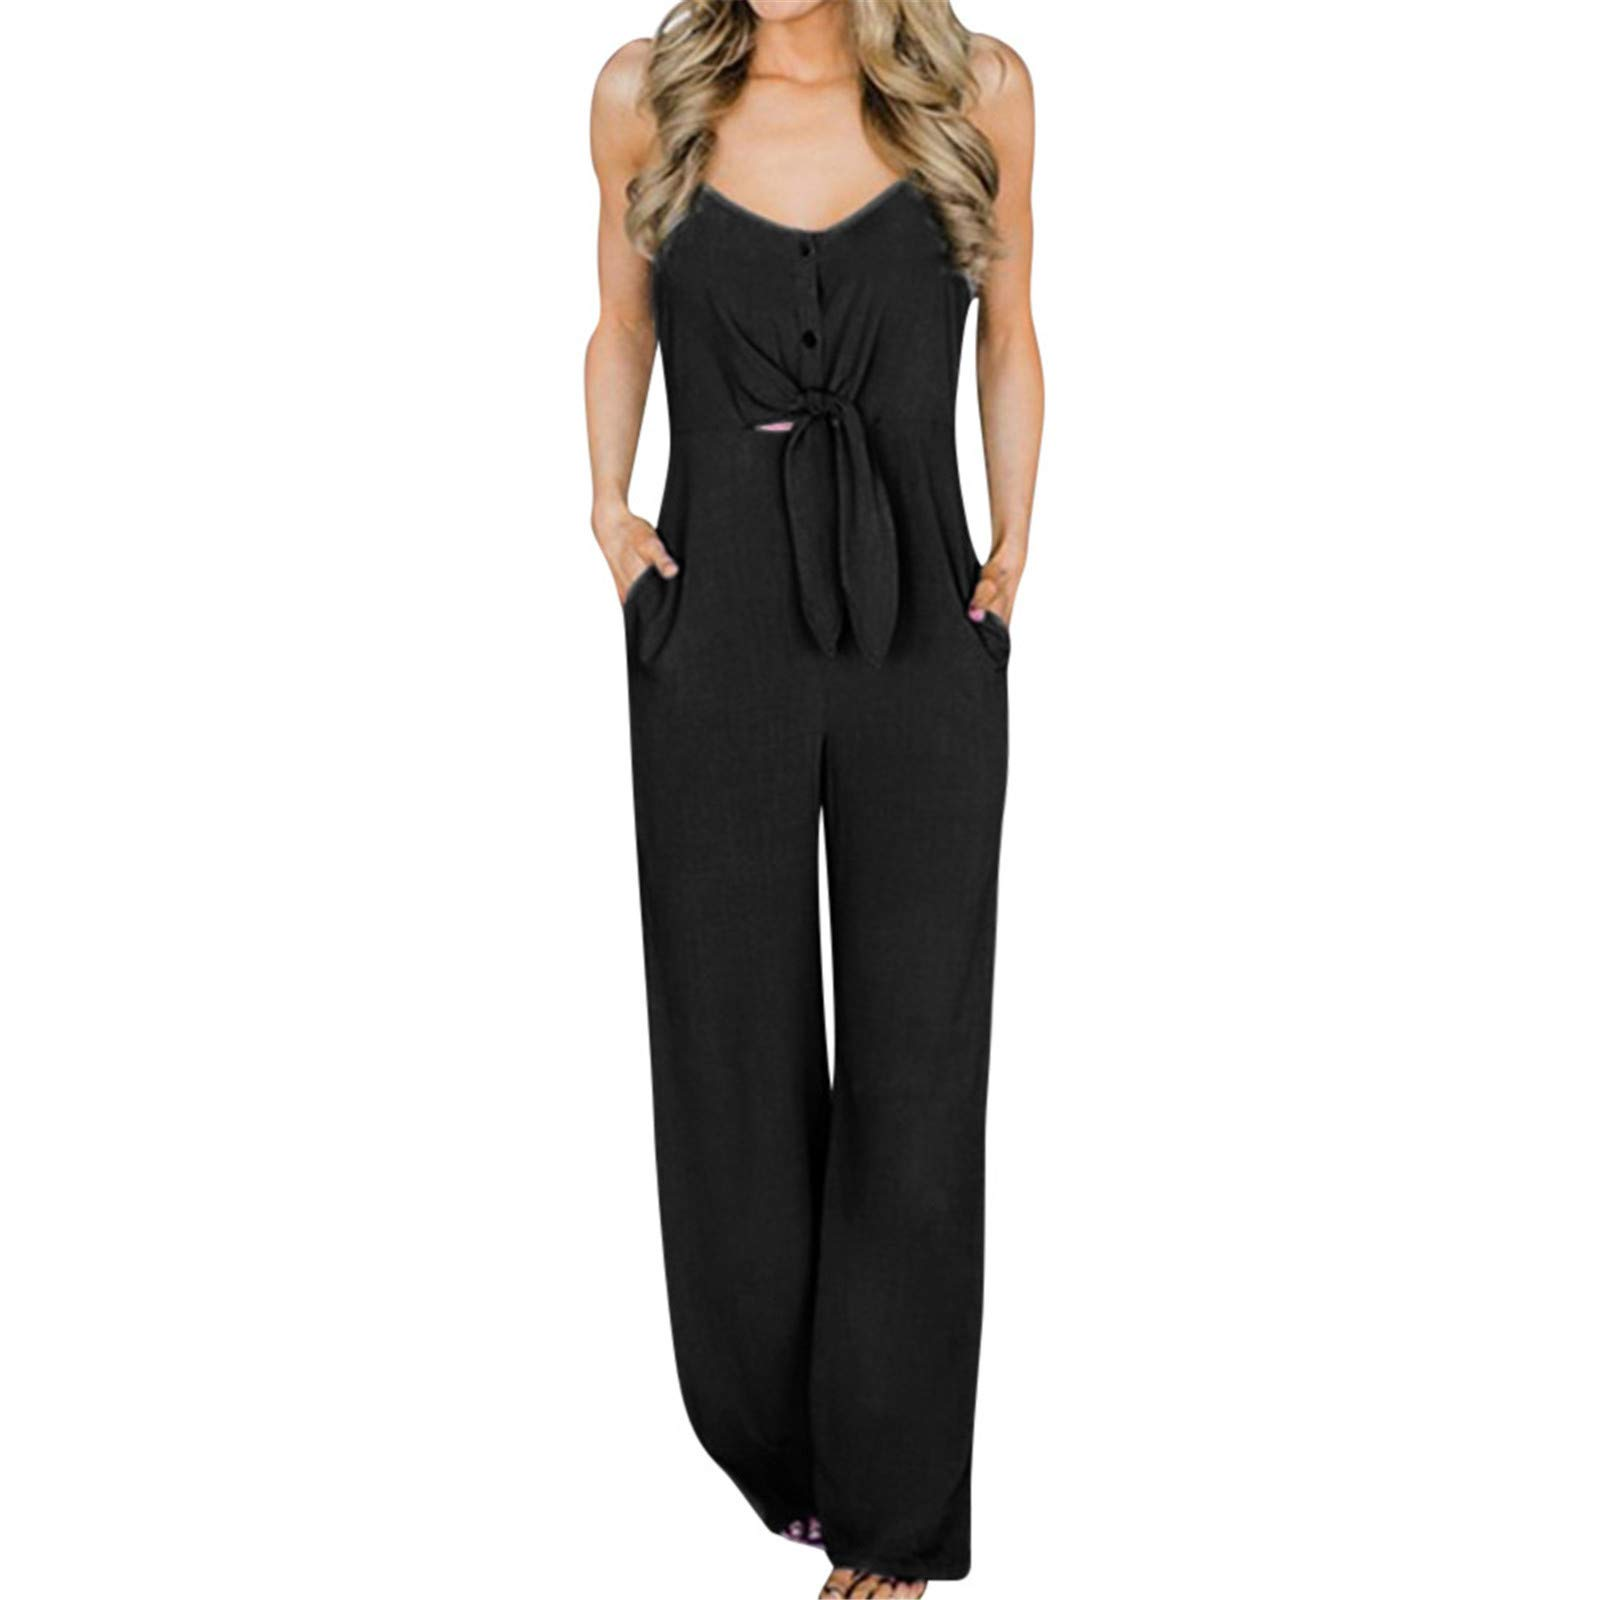 Thenxin Cami Jumpsuit for Women V-Neck Bow Knot High Waist Solid Color Long Playsuit with Pockets(B,L)